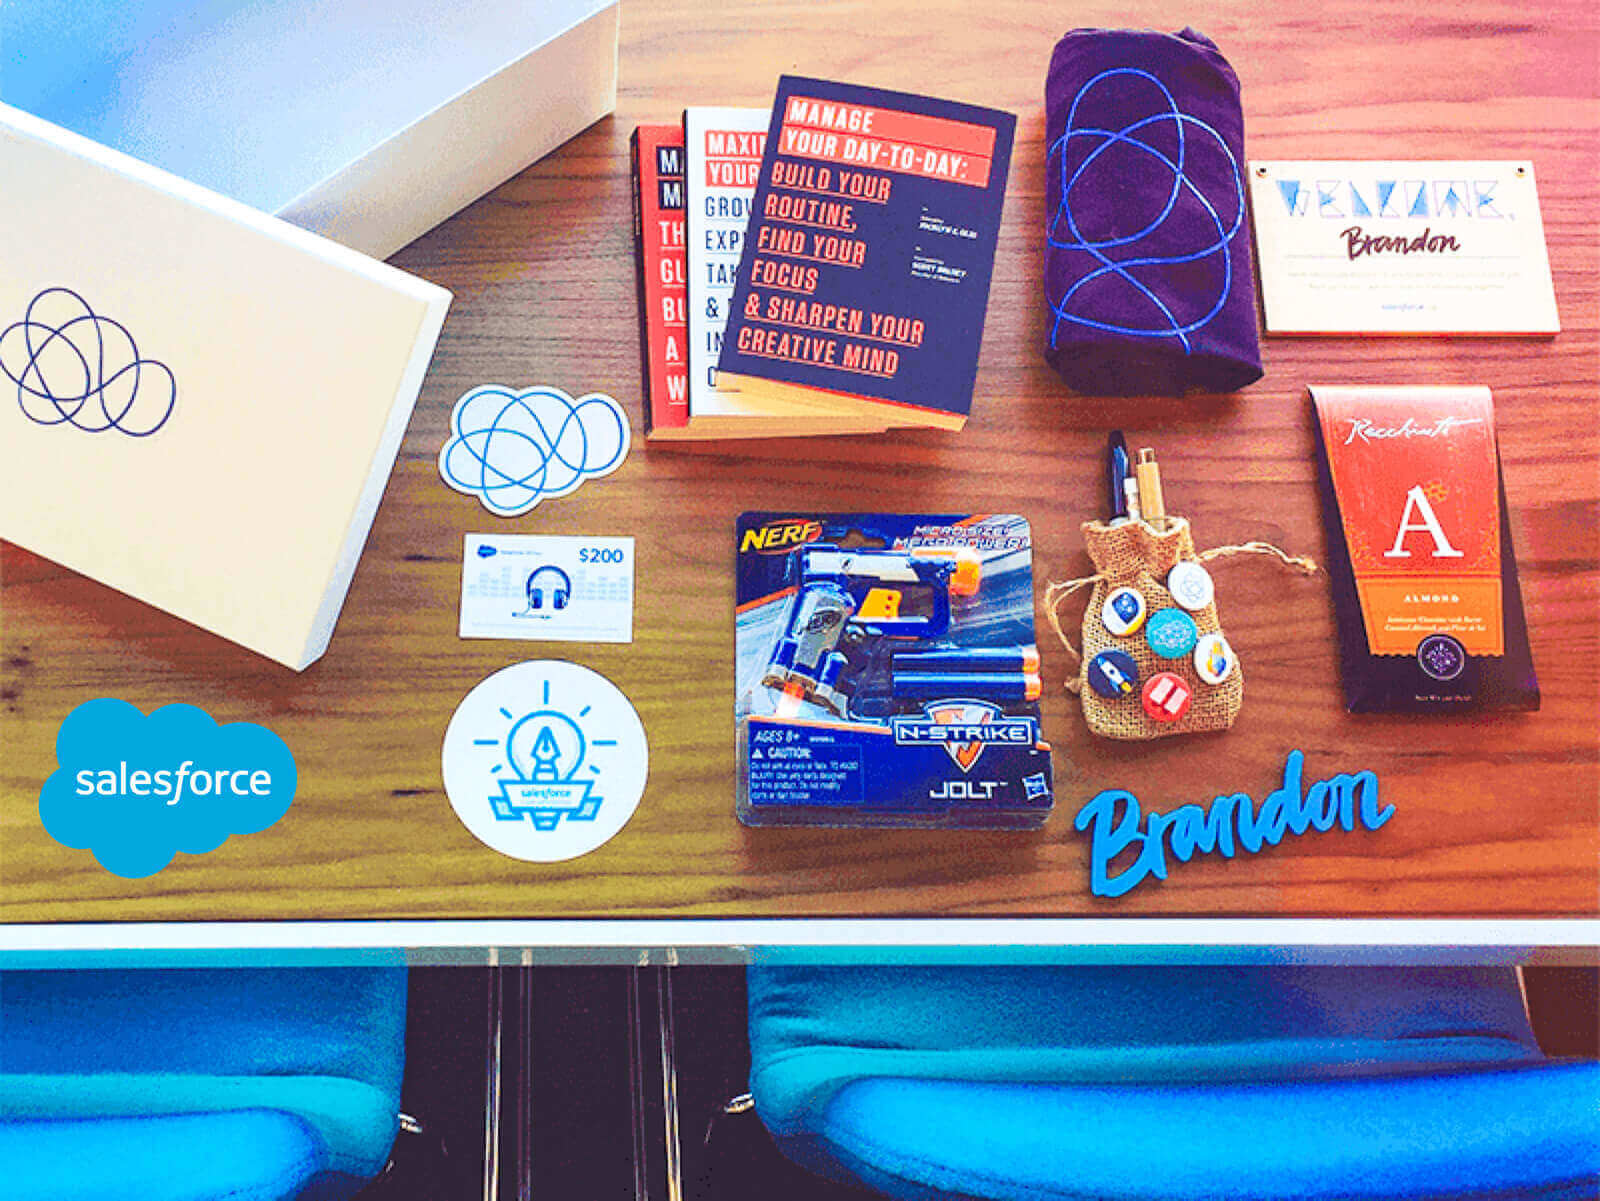 Salesforce welcome kit